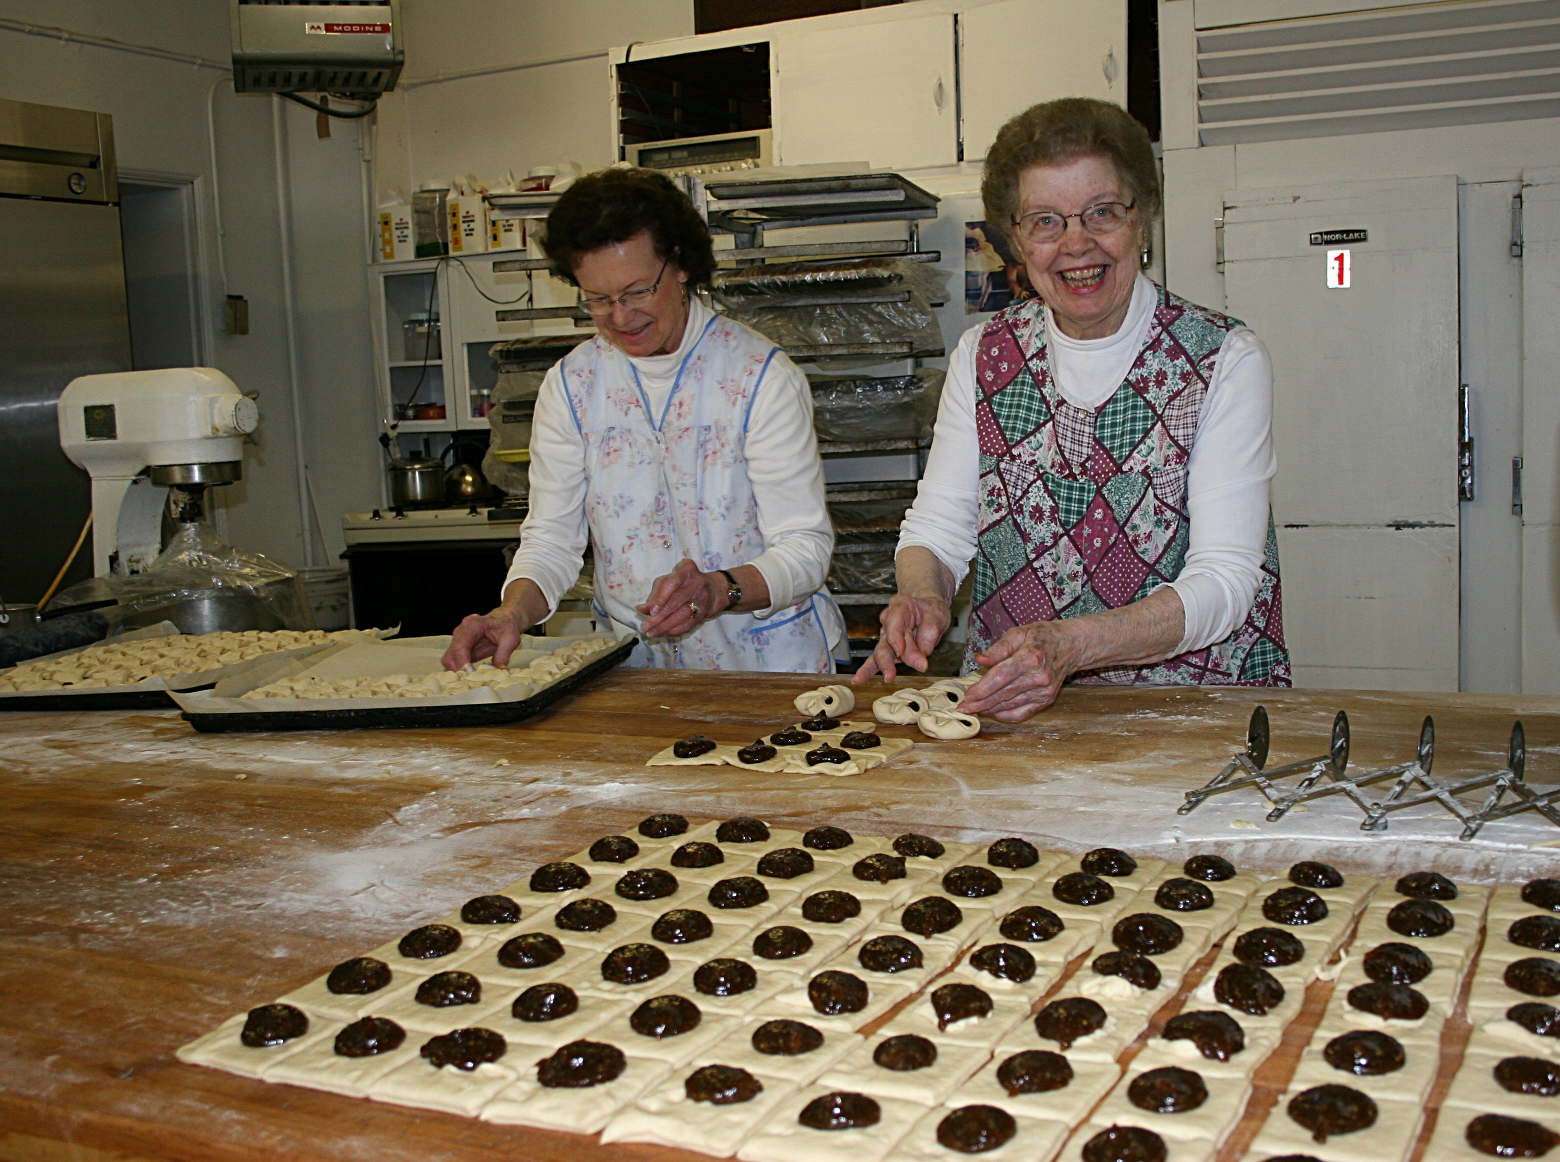 Mary Ann Kaisersatt, left, and Jule Franke make prune-filled kolacky.